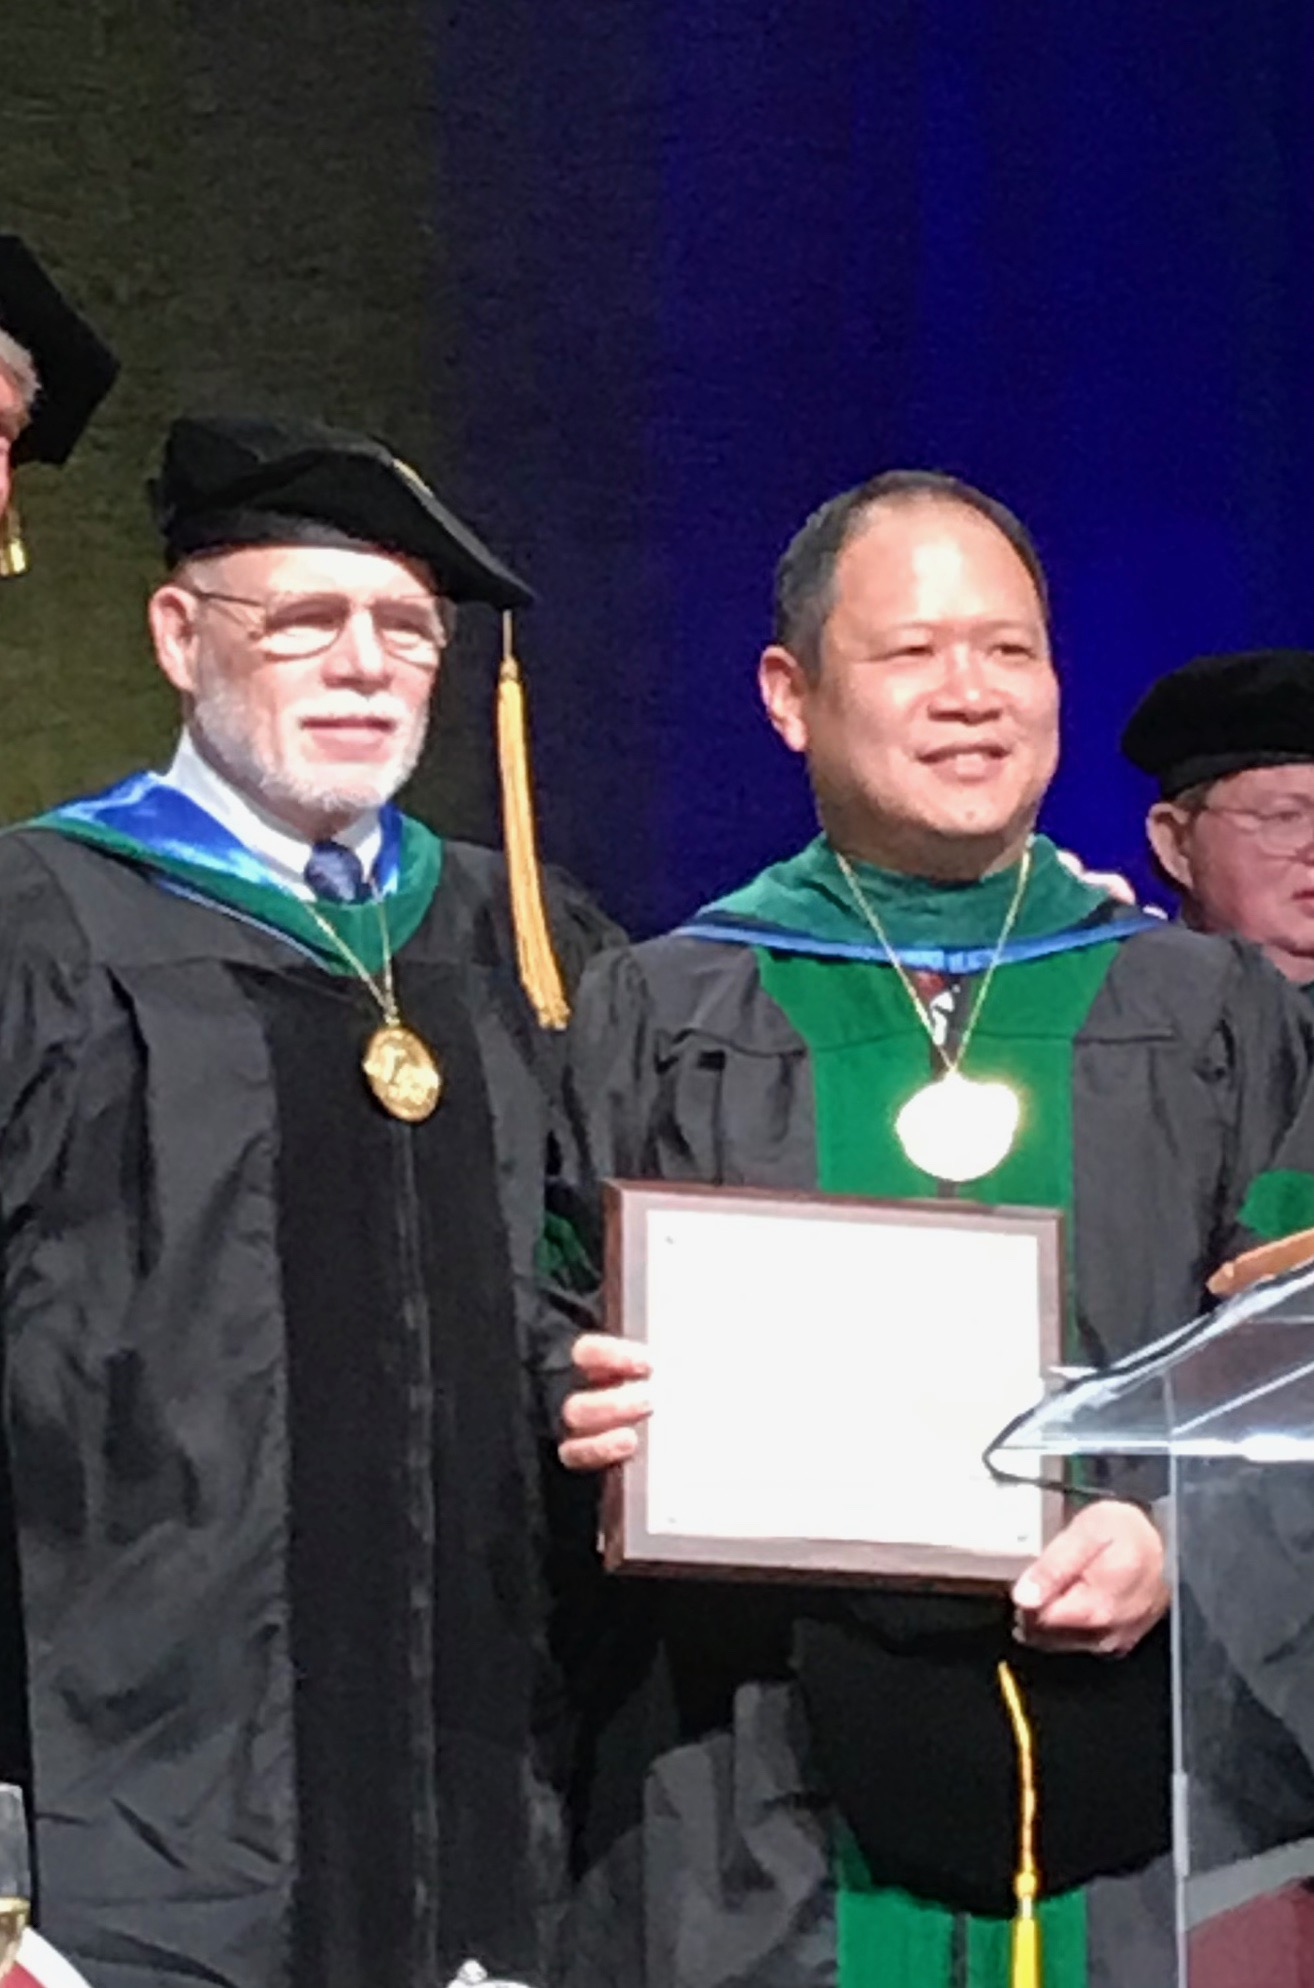 Sheldon Yao DO, received his Fellowship in the American Academy of Osteopathy from Dr. Dennis Dowling DO FAAO